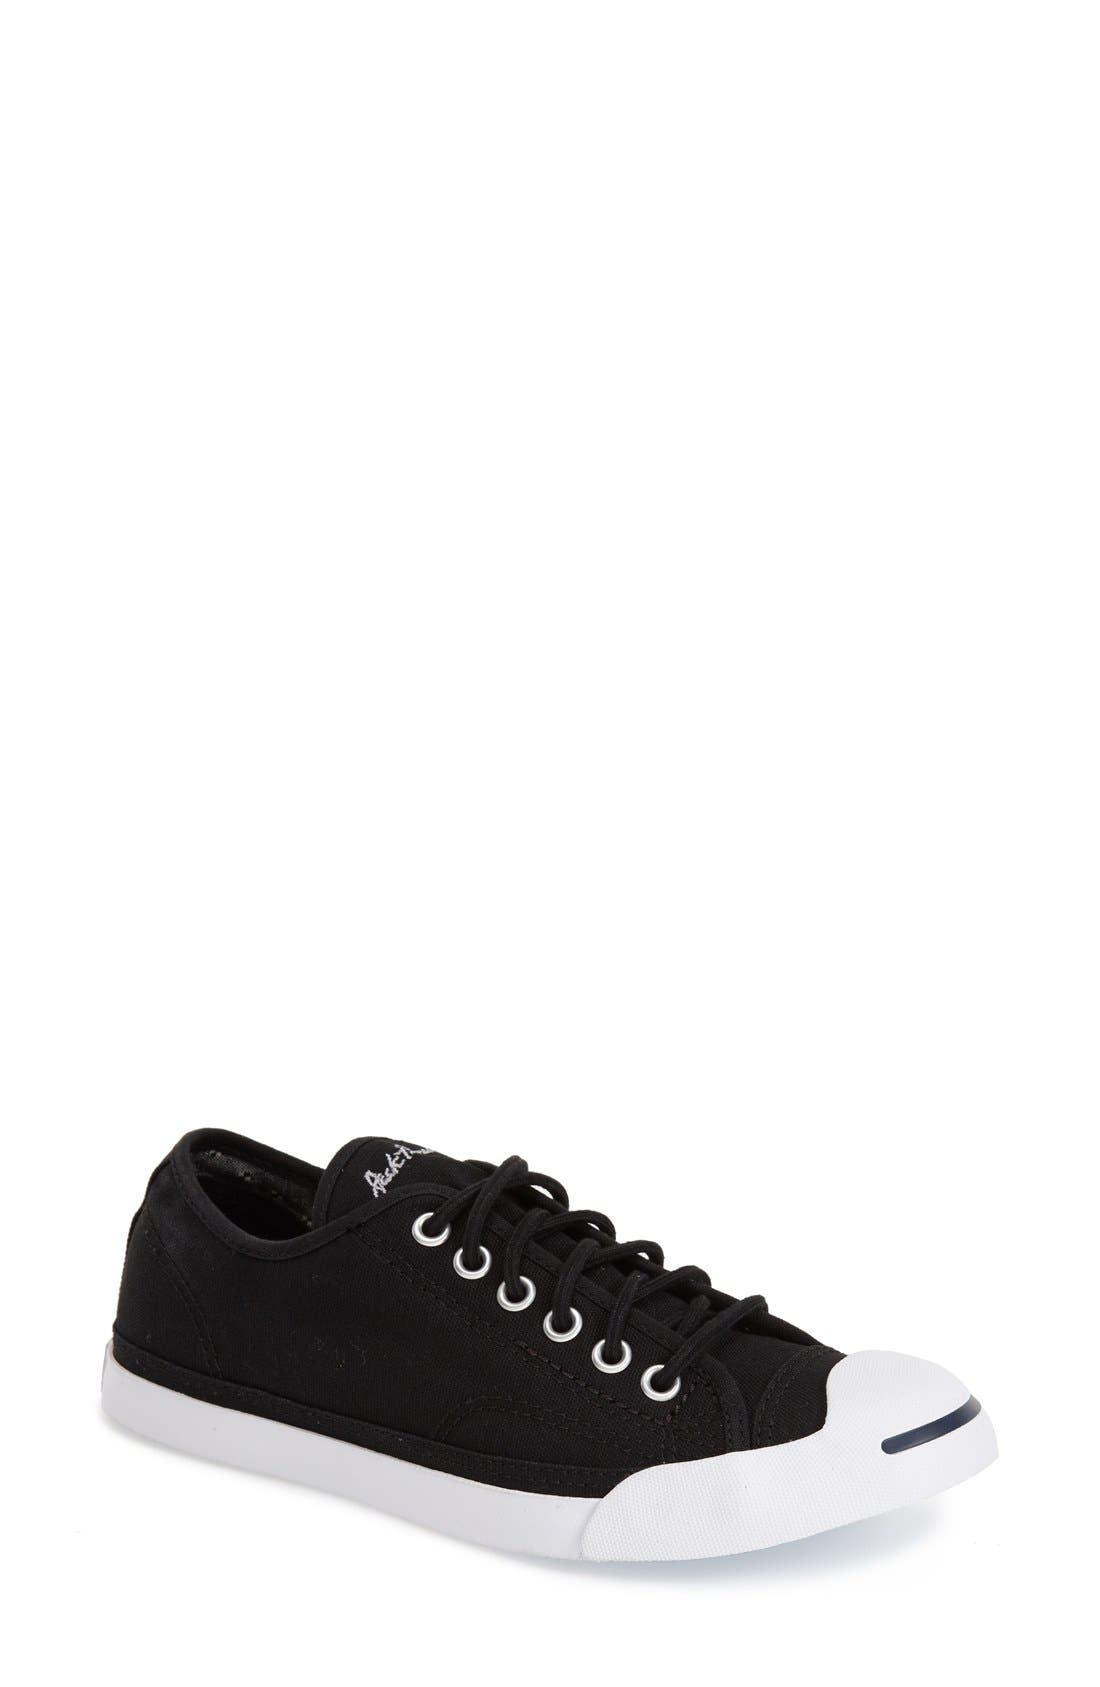 'Jack Purcell' Low Top Slip On Sneaker,                             Main thumbnail 1, color,